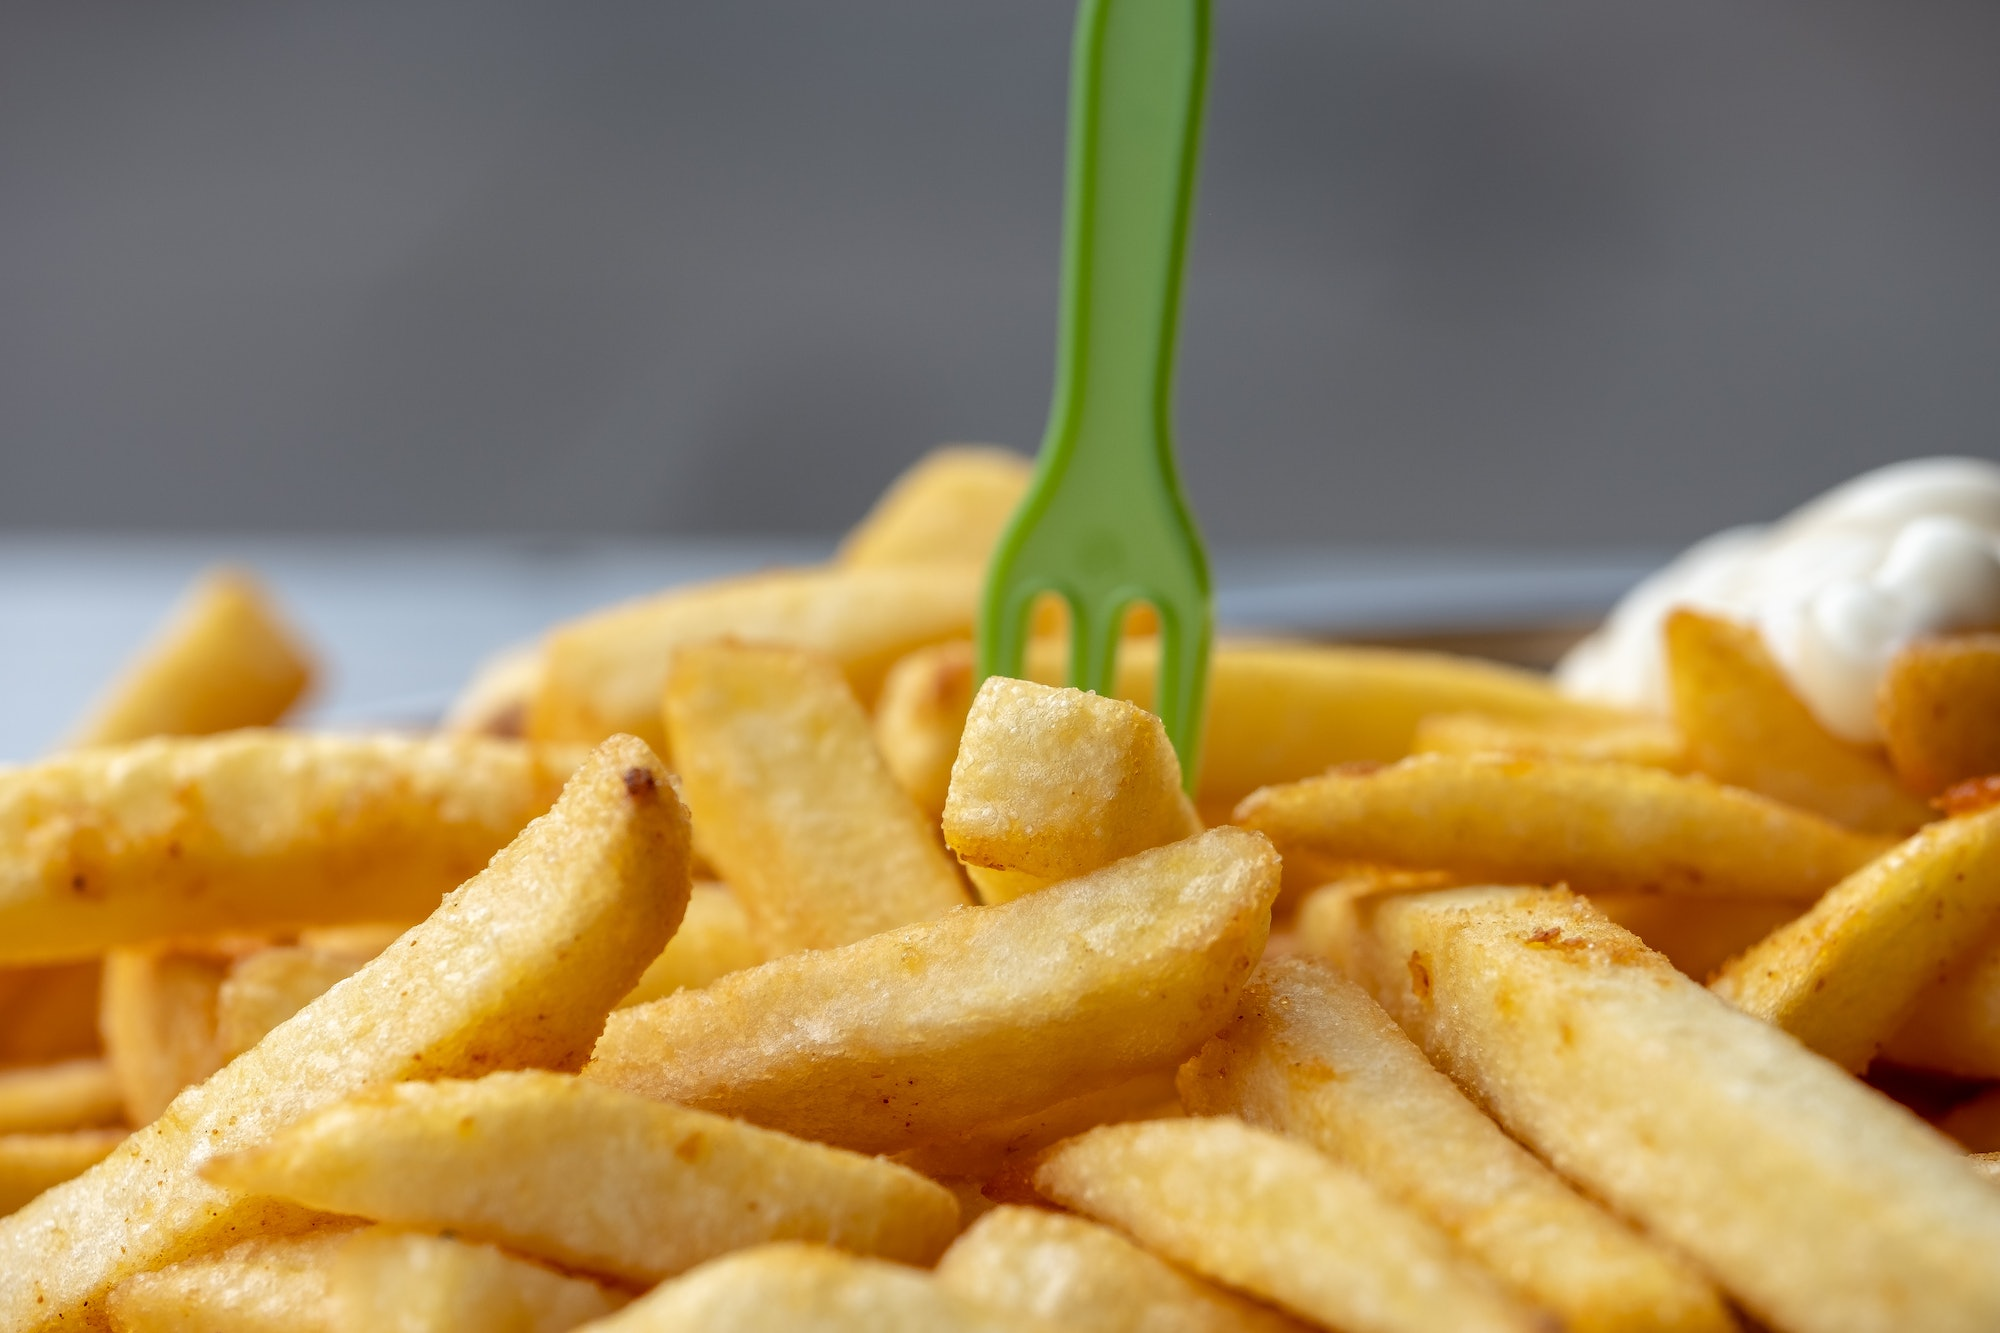 processed foods fries